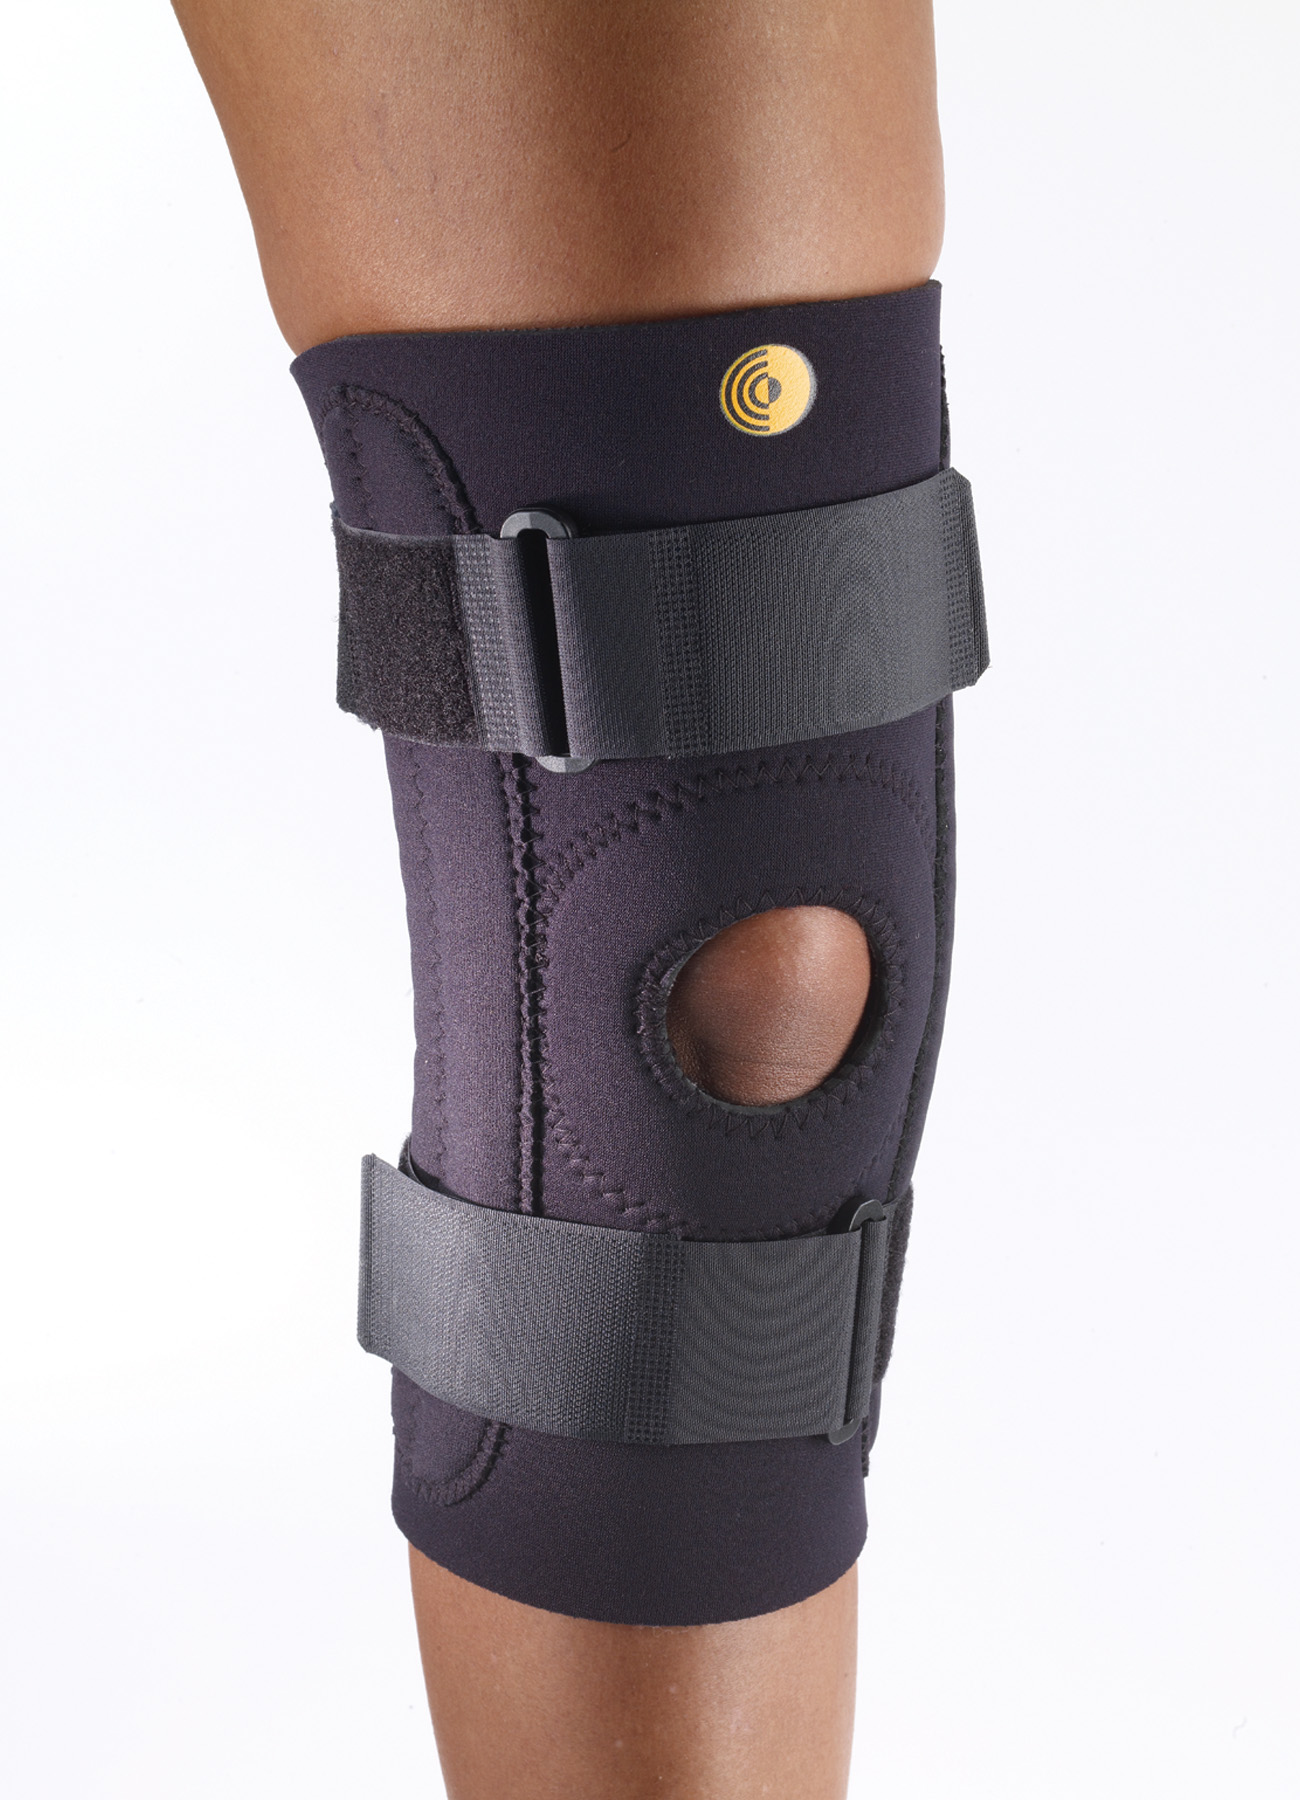 Patella Stabilizer w/CorTrak Buttress